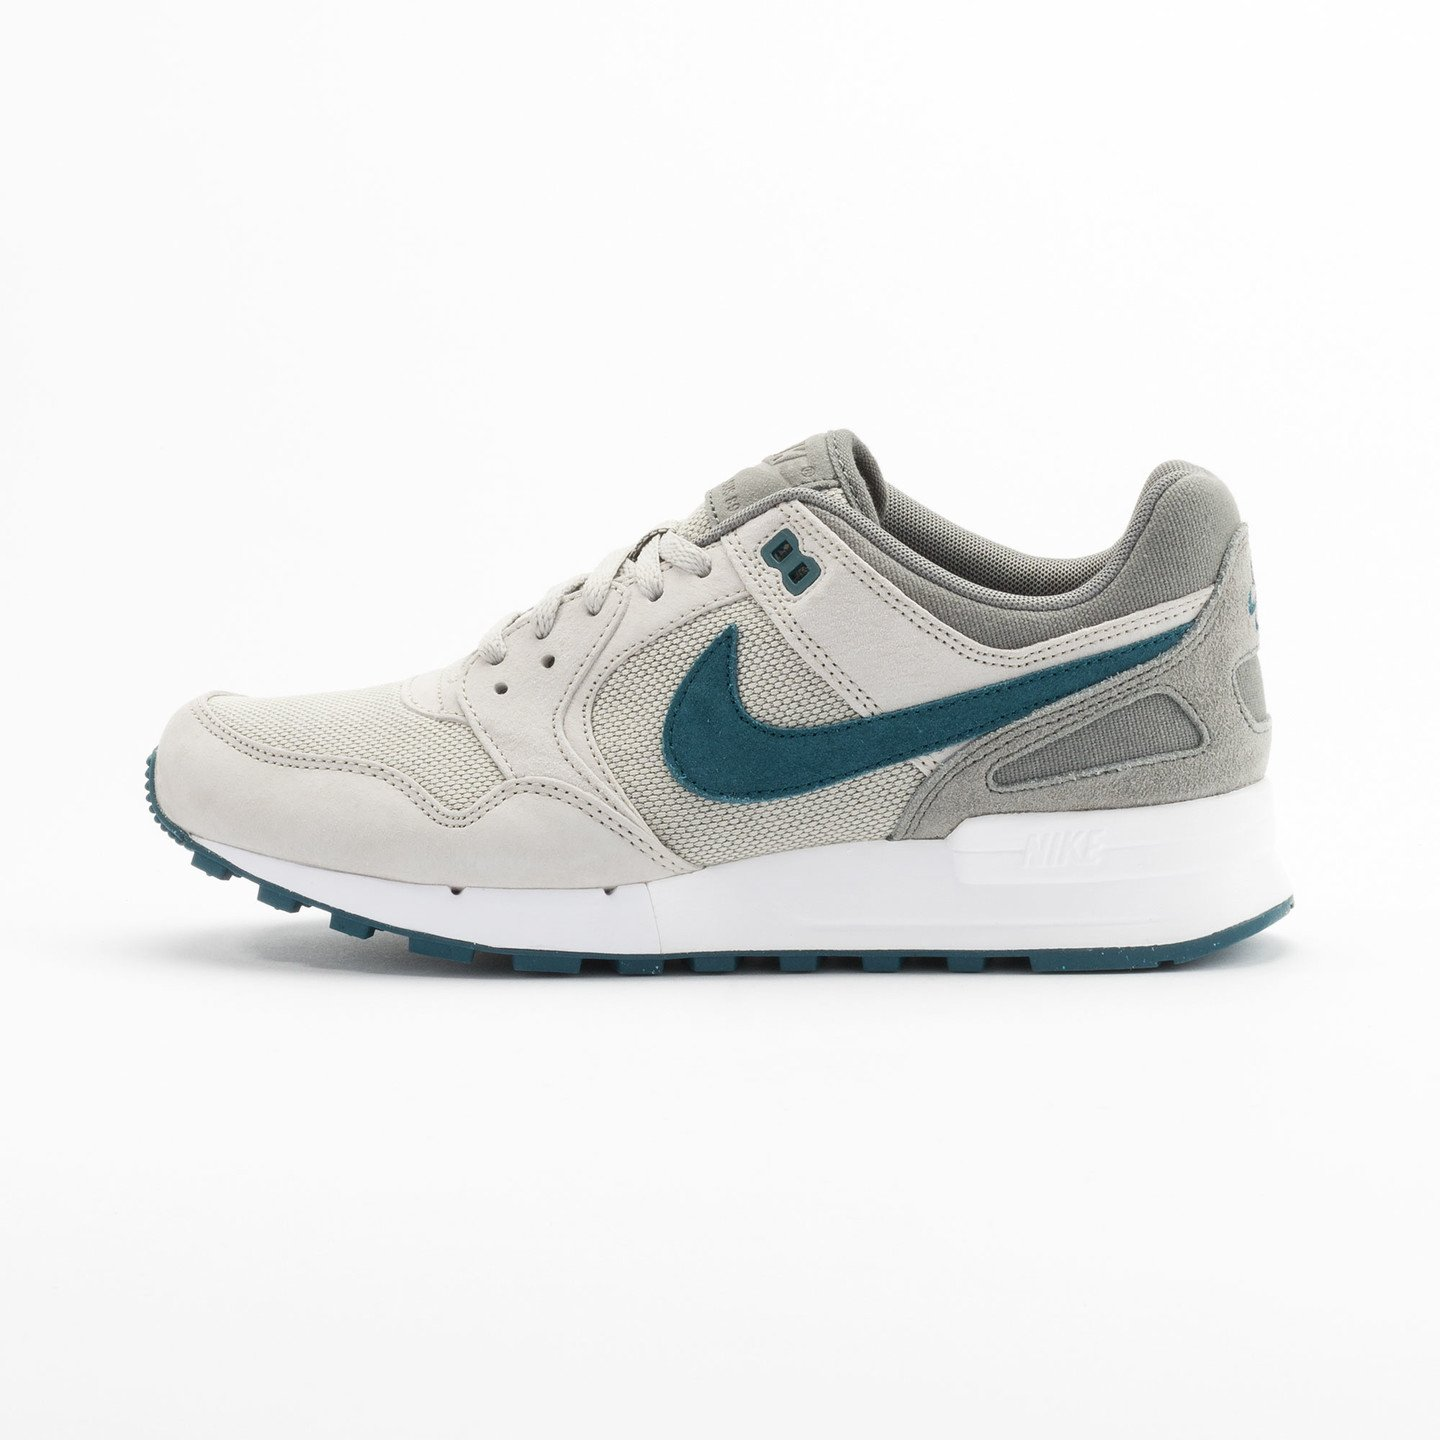 Nike Air Pegasus 89 Premium Lunar Grey / Teal - Tumbled Grey 724269-030-42